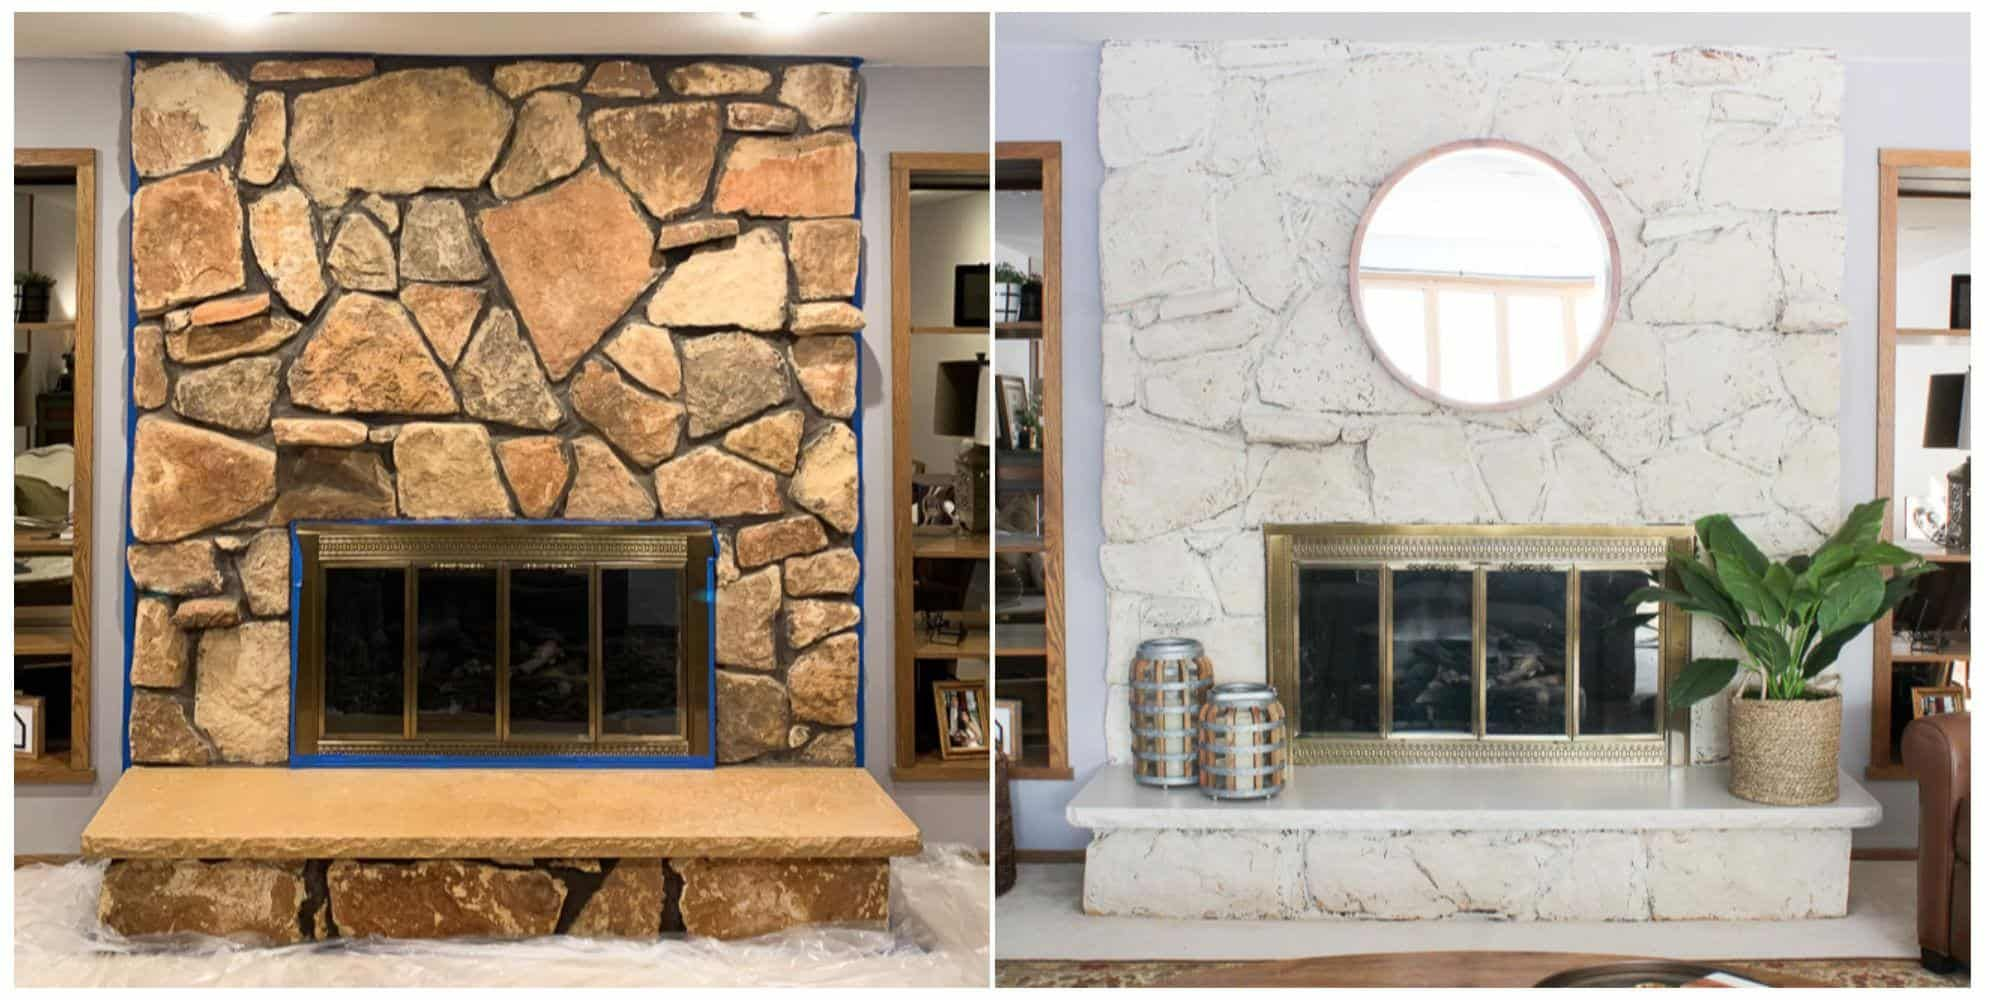 Limewash Stone Fireplace Makeover: Bye Bye Orange Stone Fireplace, Hello Neutral Stone Beauty! - Average But Inspired